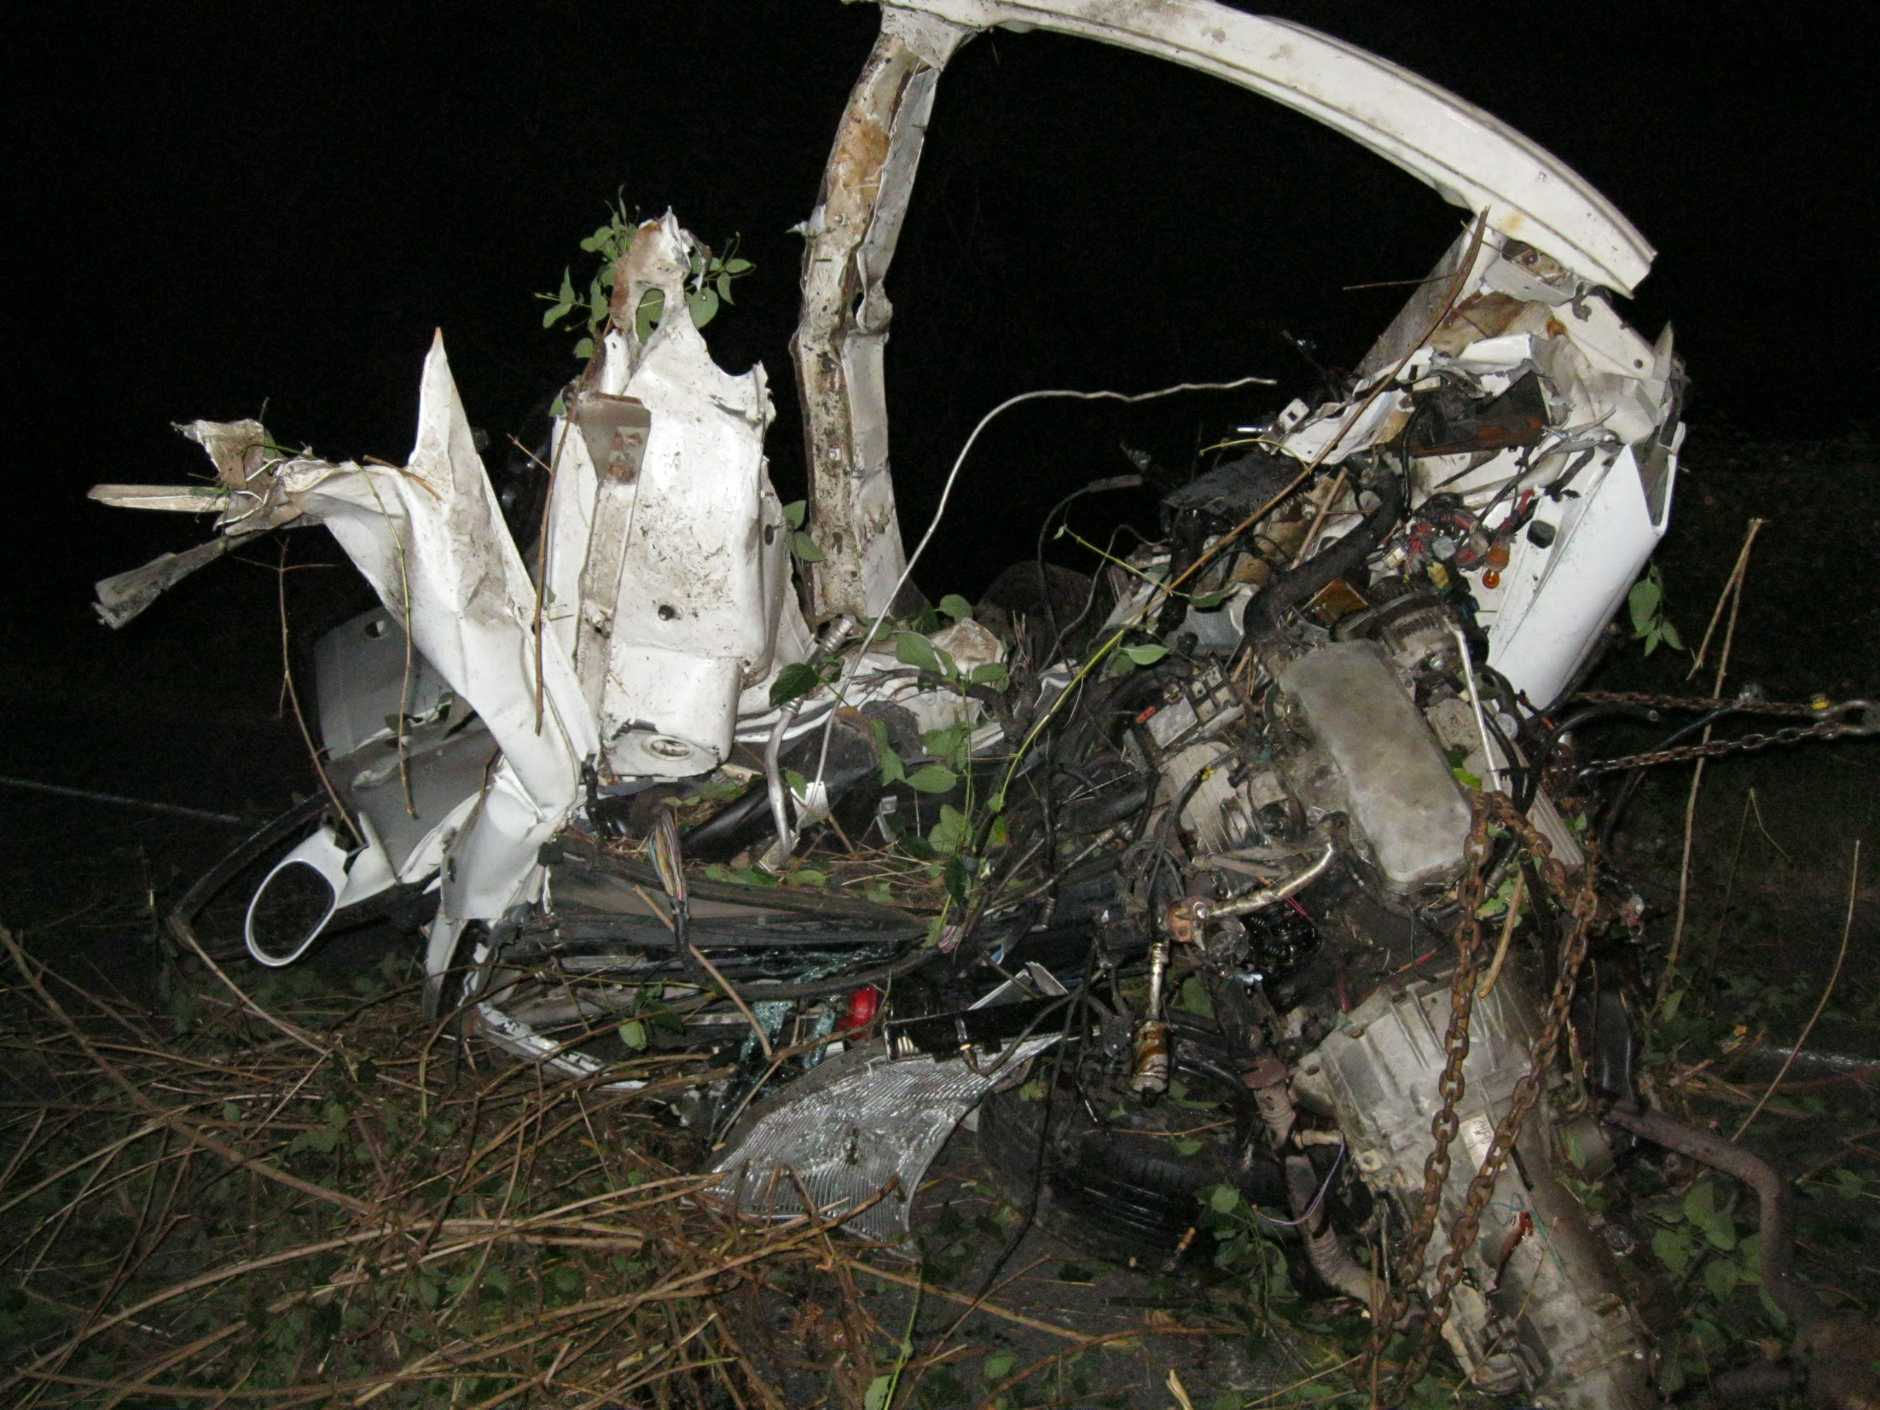 The wreck of a car that hit a tree after leaving the road at Cooroy.